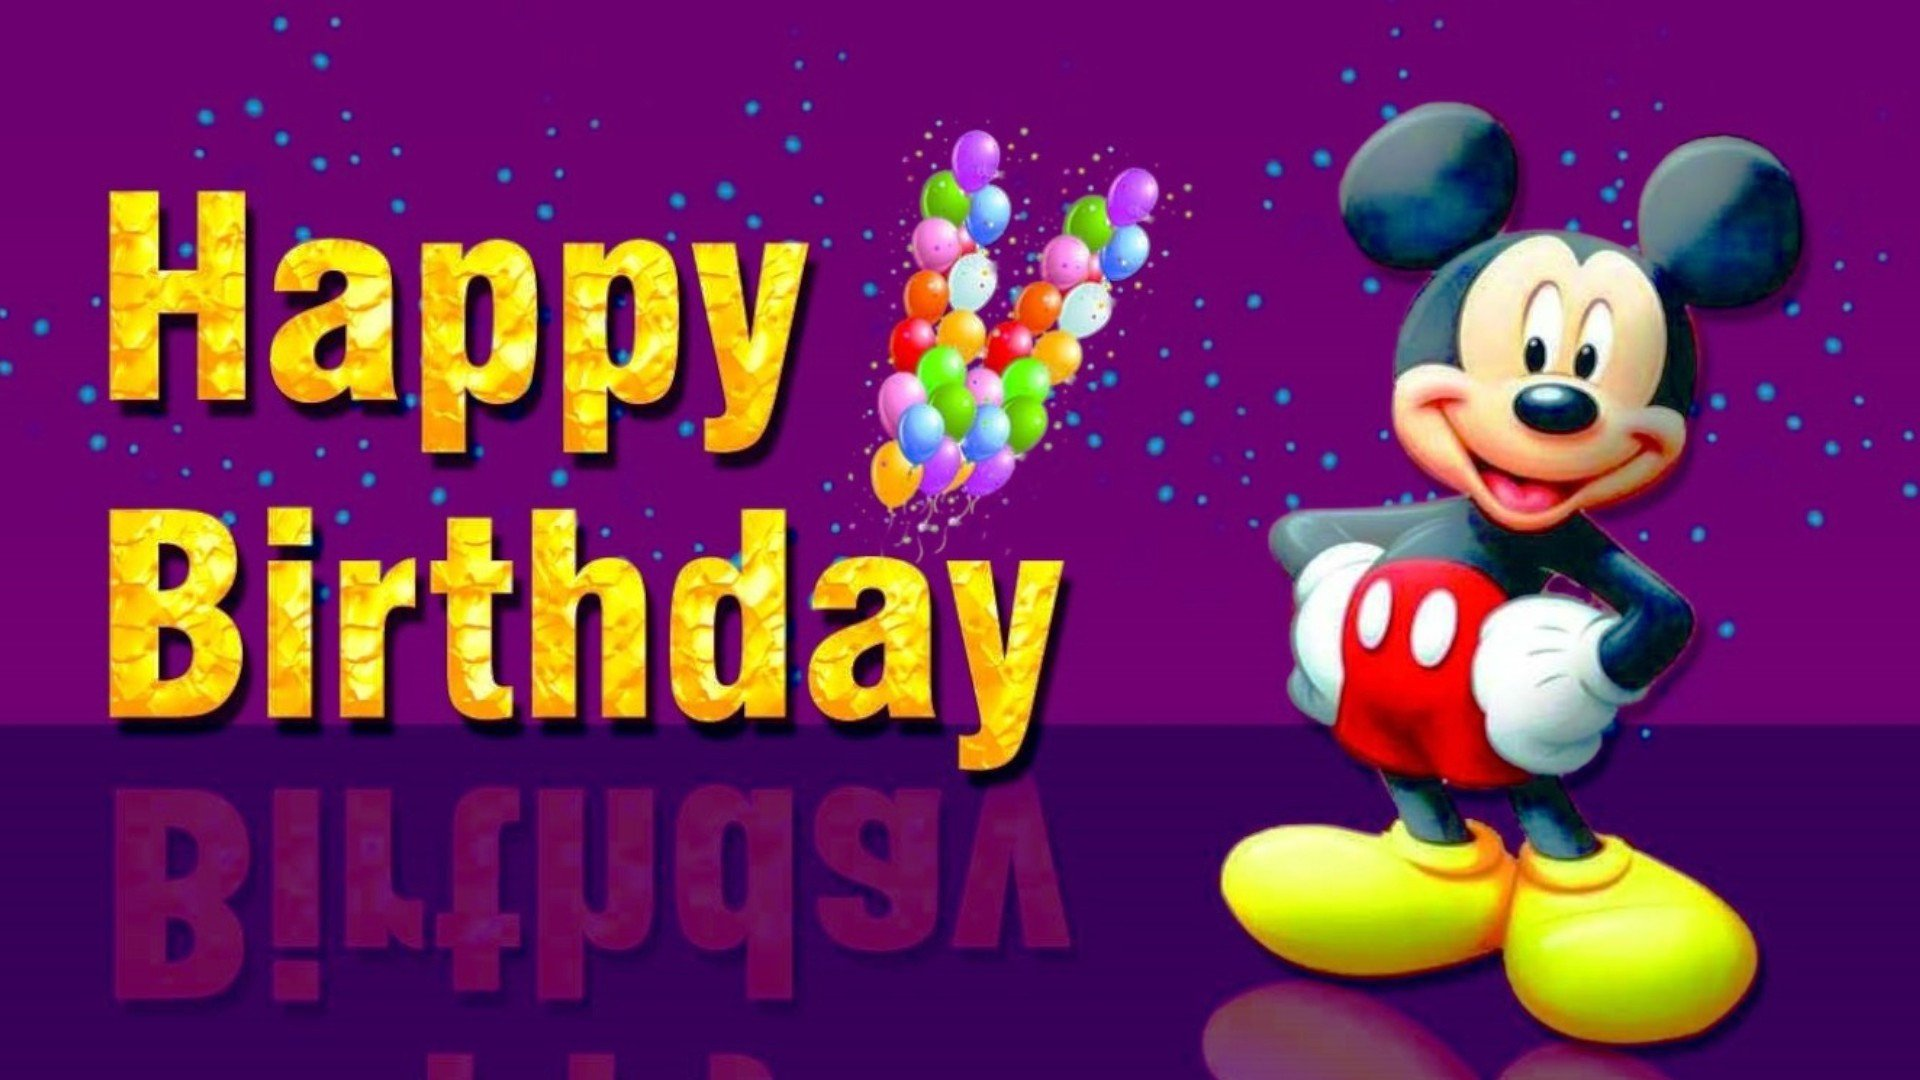 Happy Birthday High Definition Happy Birthday Wallpapers Free Download Download Free High